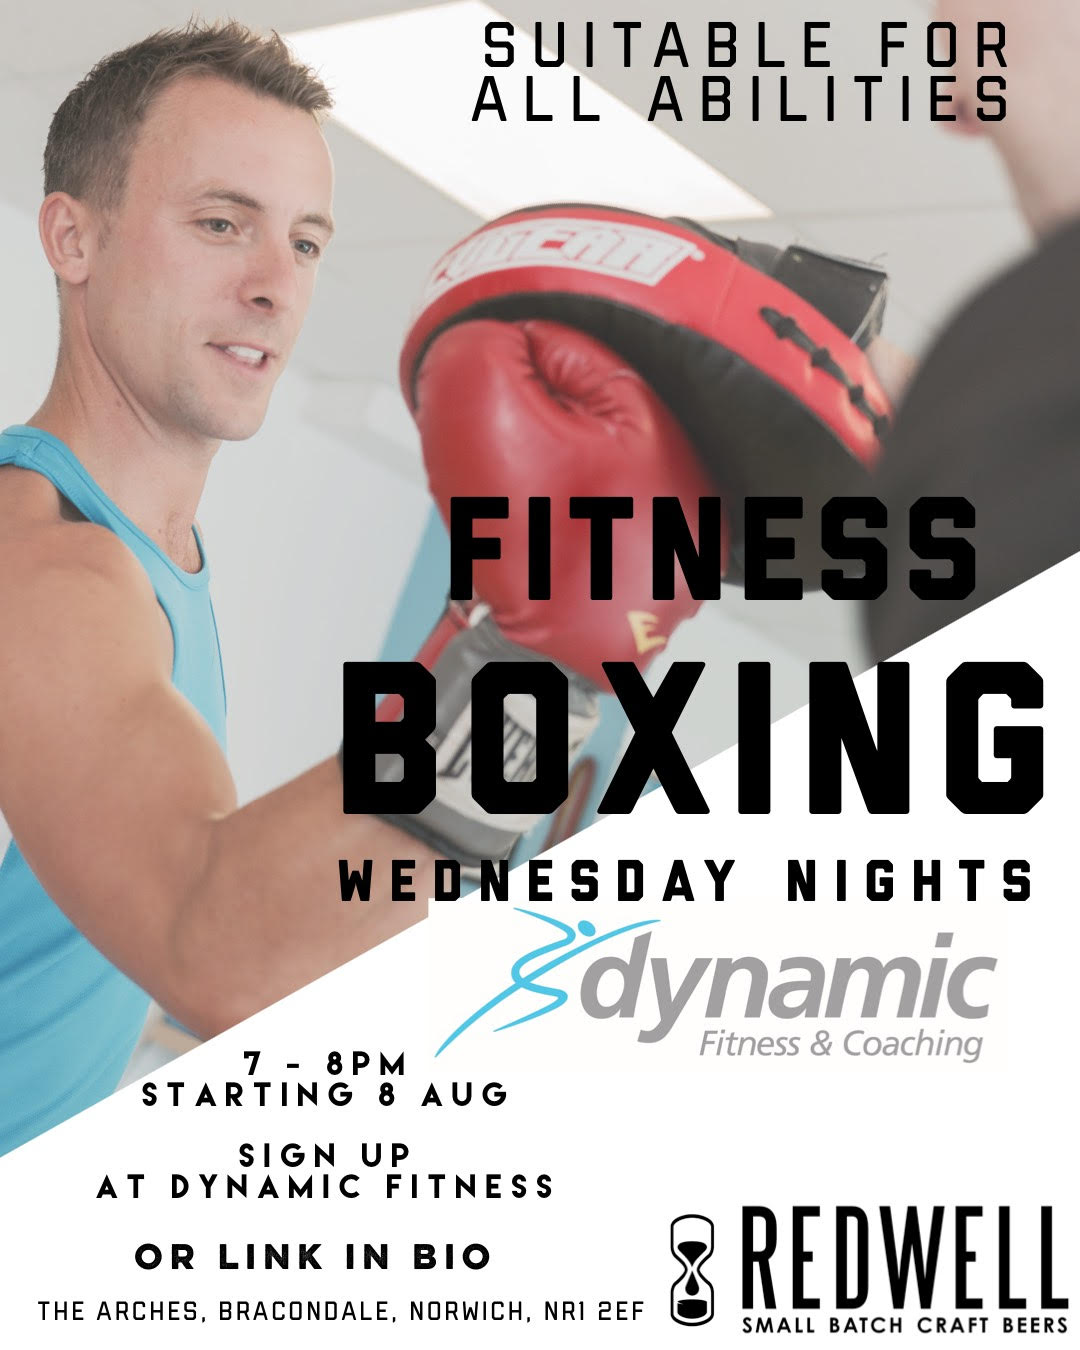 Fitness Boxing @ Redwell.jpg